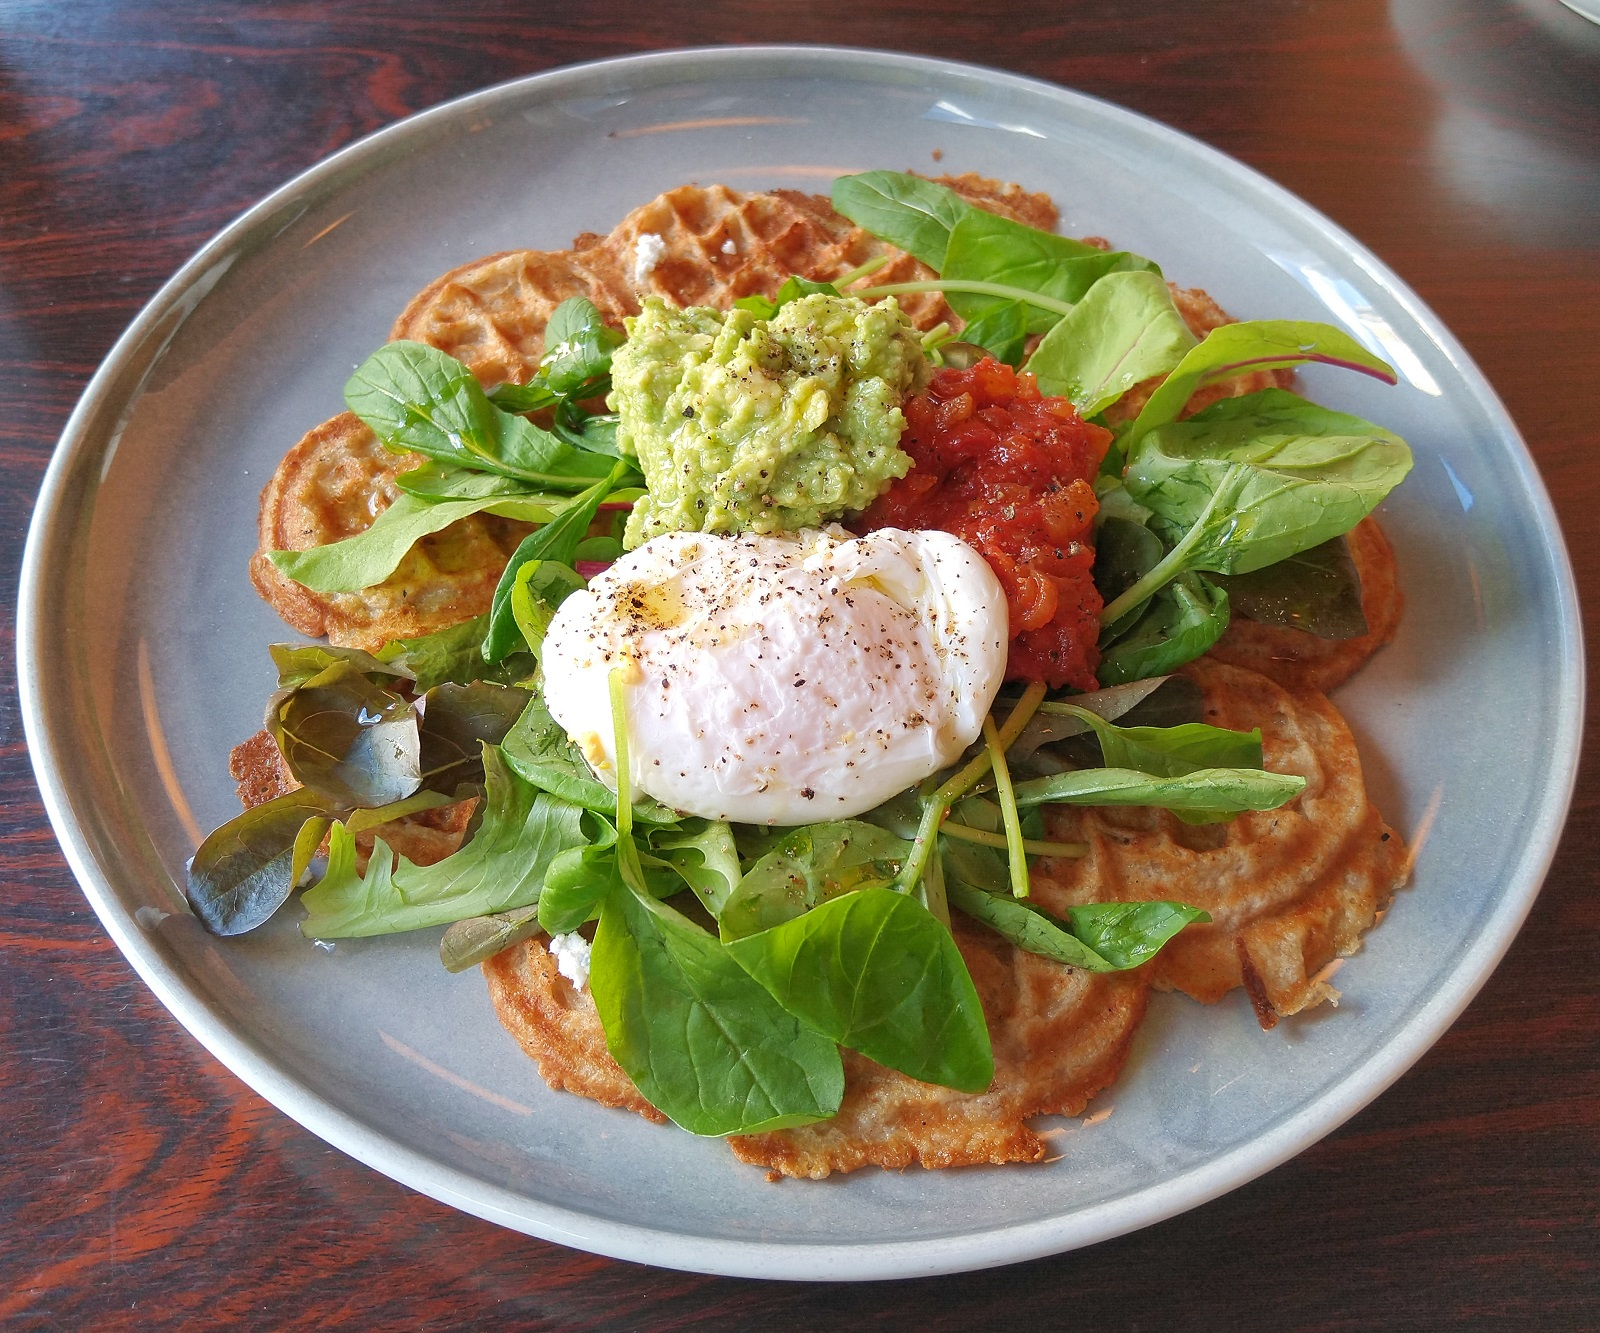 A Norwegian waffle, which I had for breakfast at Fuglen Asakusa, topped with a poached egg, spinach, salsa and avocado.